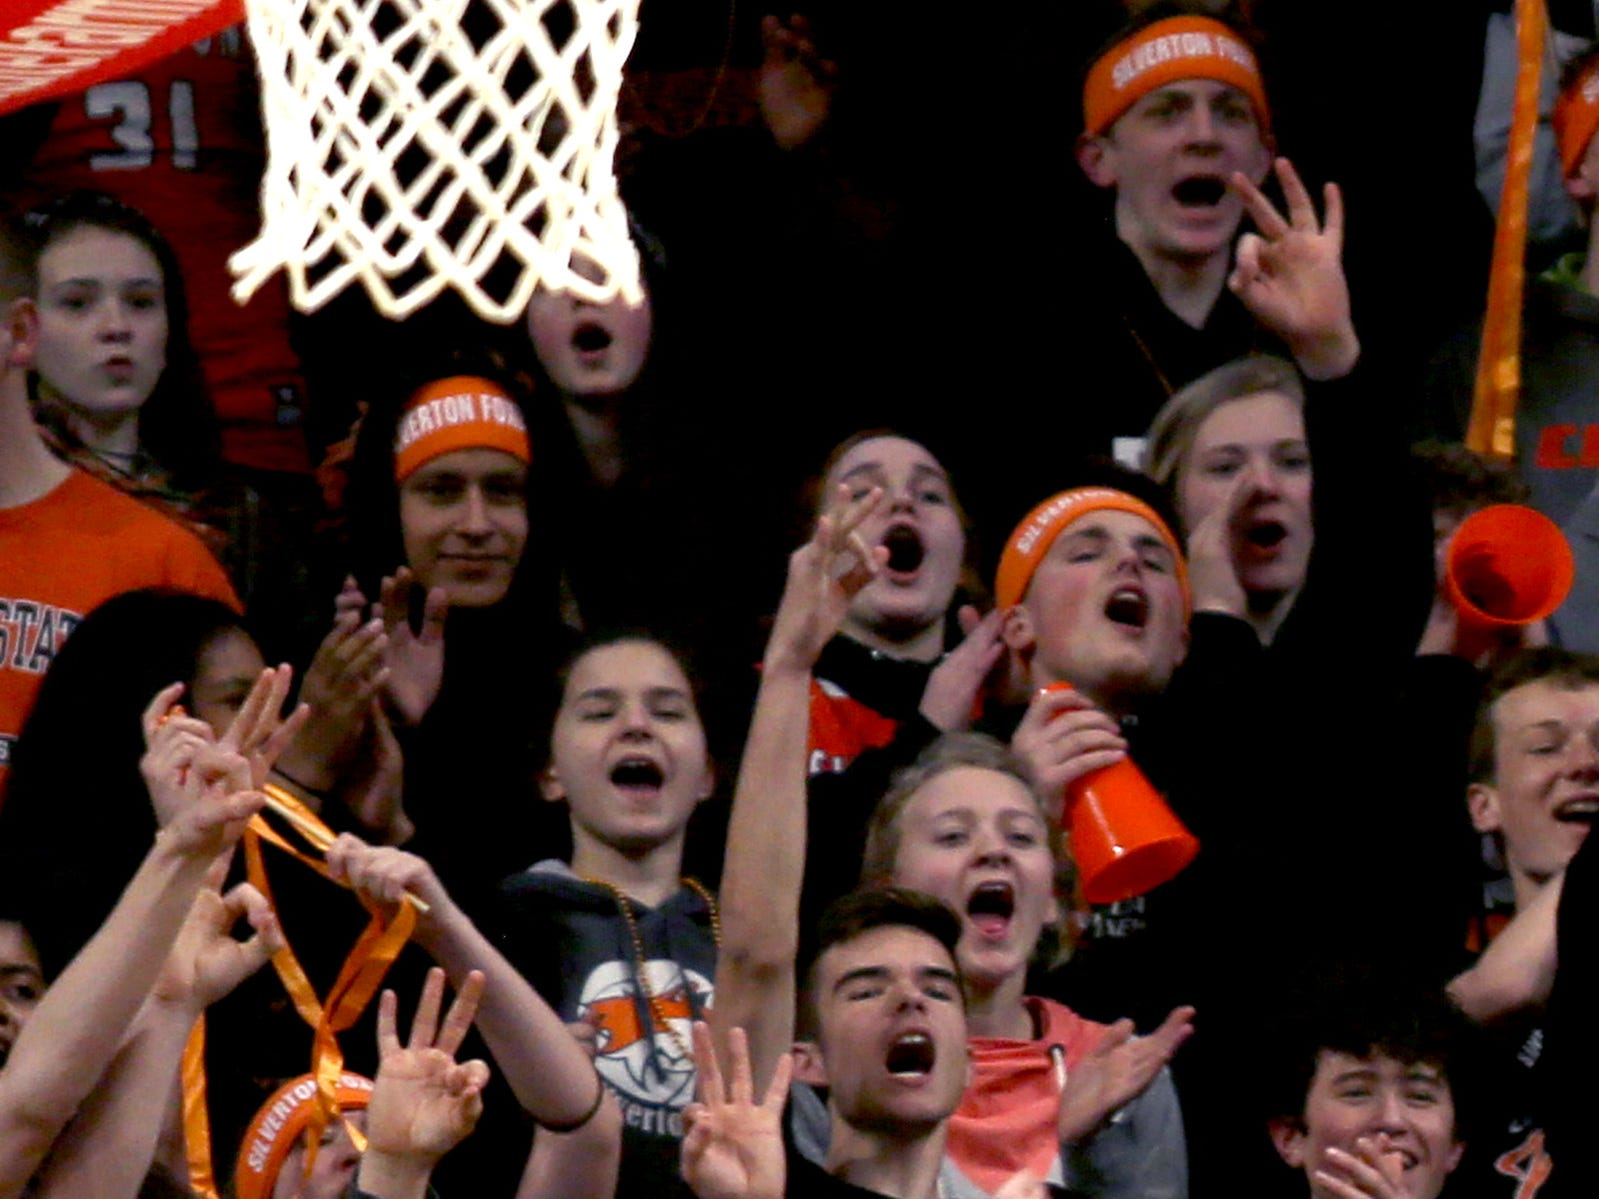 Silverton fans cheer in the first half of the La Salle Prep vs. Silverton girls basketball game in the OSAA Class 5A quarterfinals at Oregon State University in Corvallis on Thursday, March 7, 2019. La Salle Prep won the game 57-46.